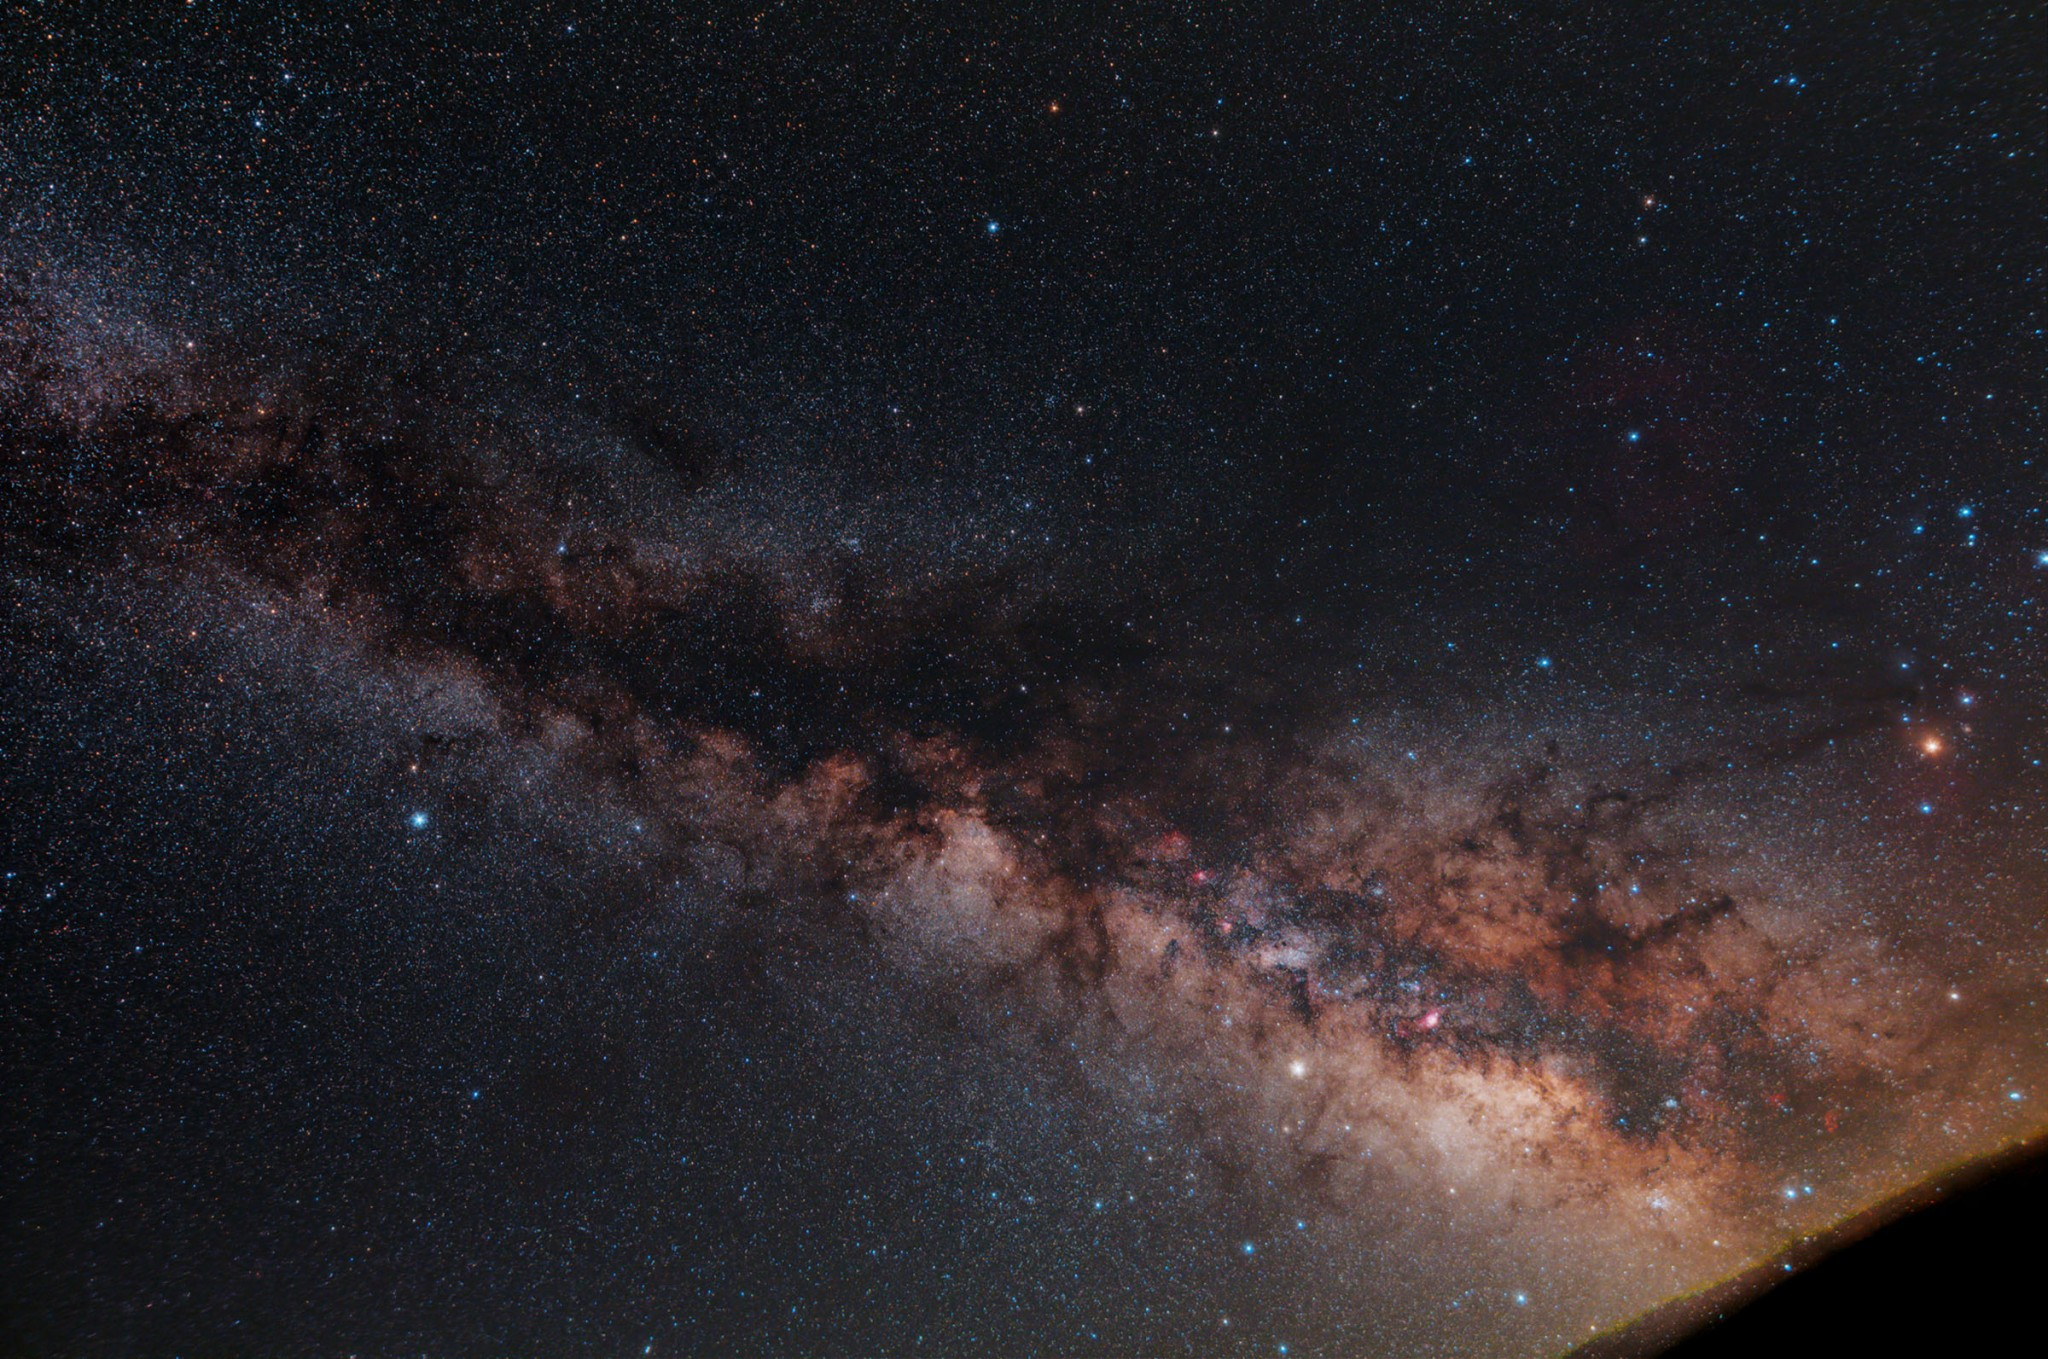 How to Photograph the Milky Way | Easy to Follow Camera Settings